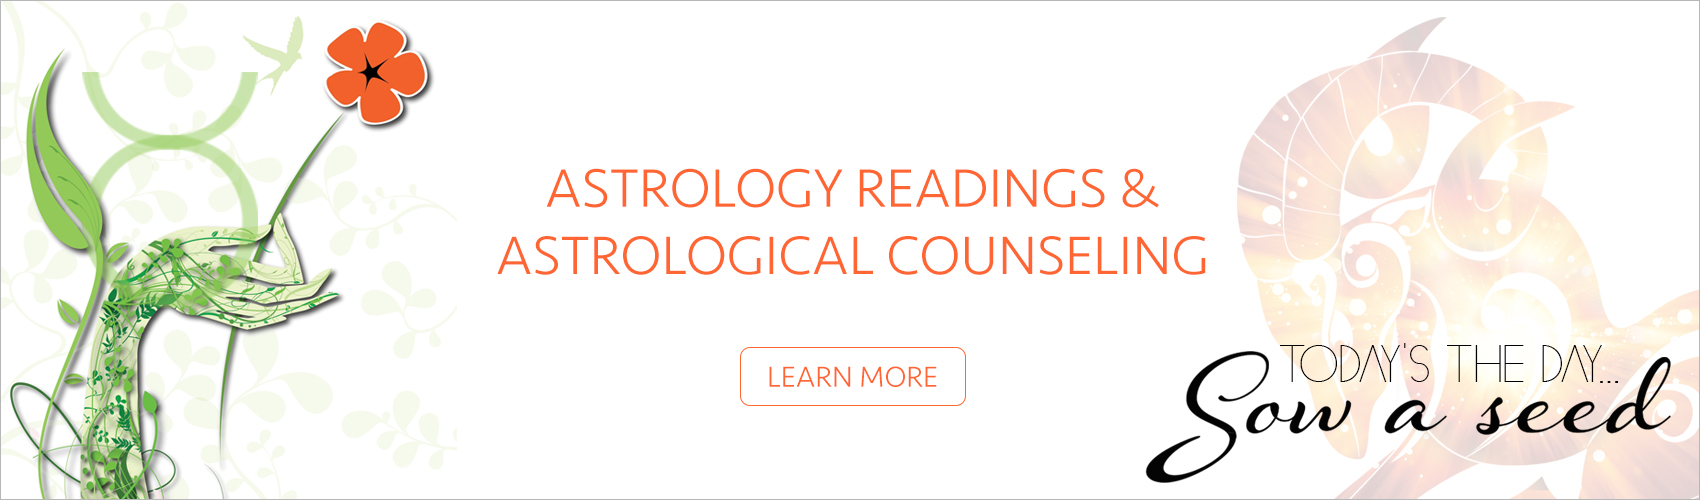 astrology readings astrological counseling